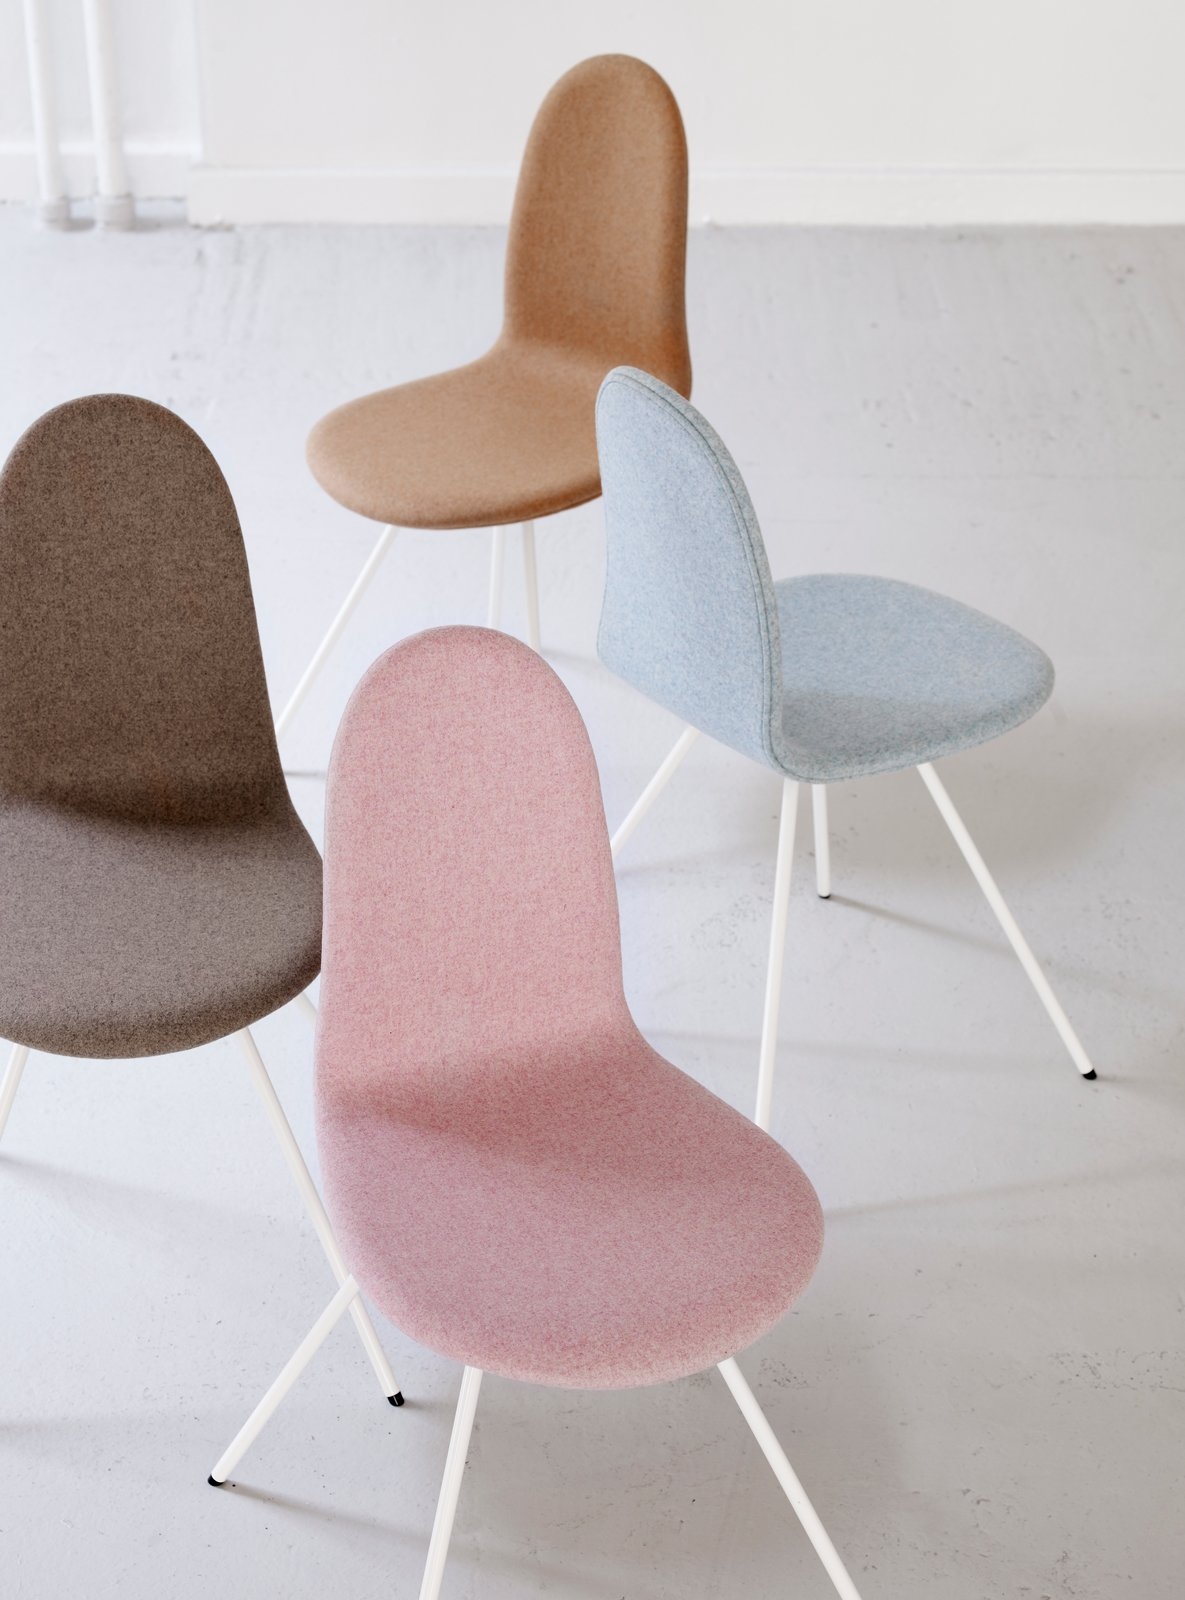 #interior #modern #inside #design #interiordesign #chairs #minimal #fabricchair #pink #mintblue #ochre #sand #tonguechair #arnejacobsen #seatingdesign #seating  100+ Best Modern Seating Designs by Dwell